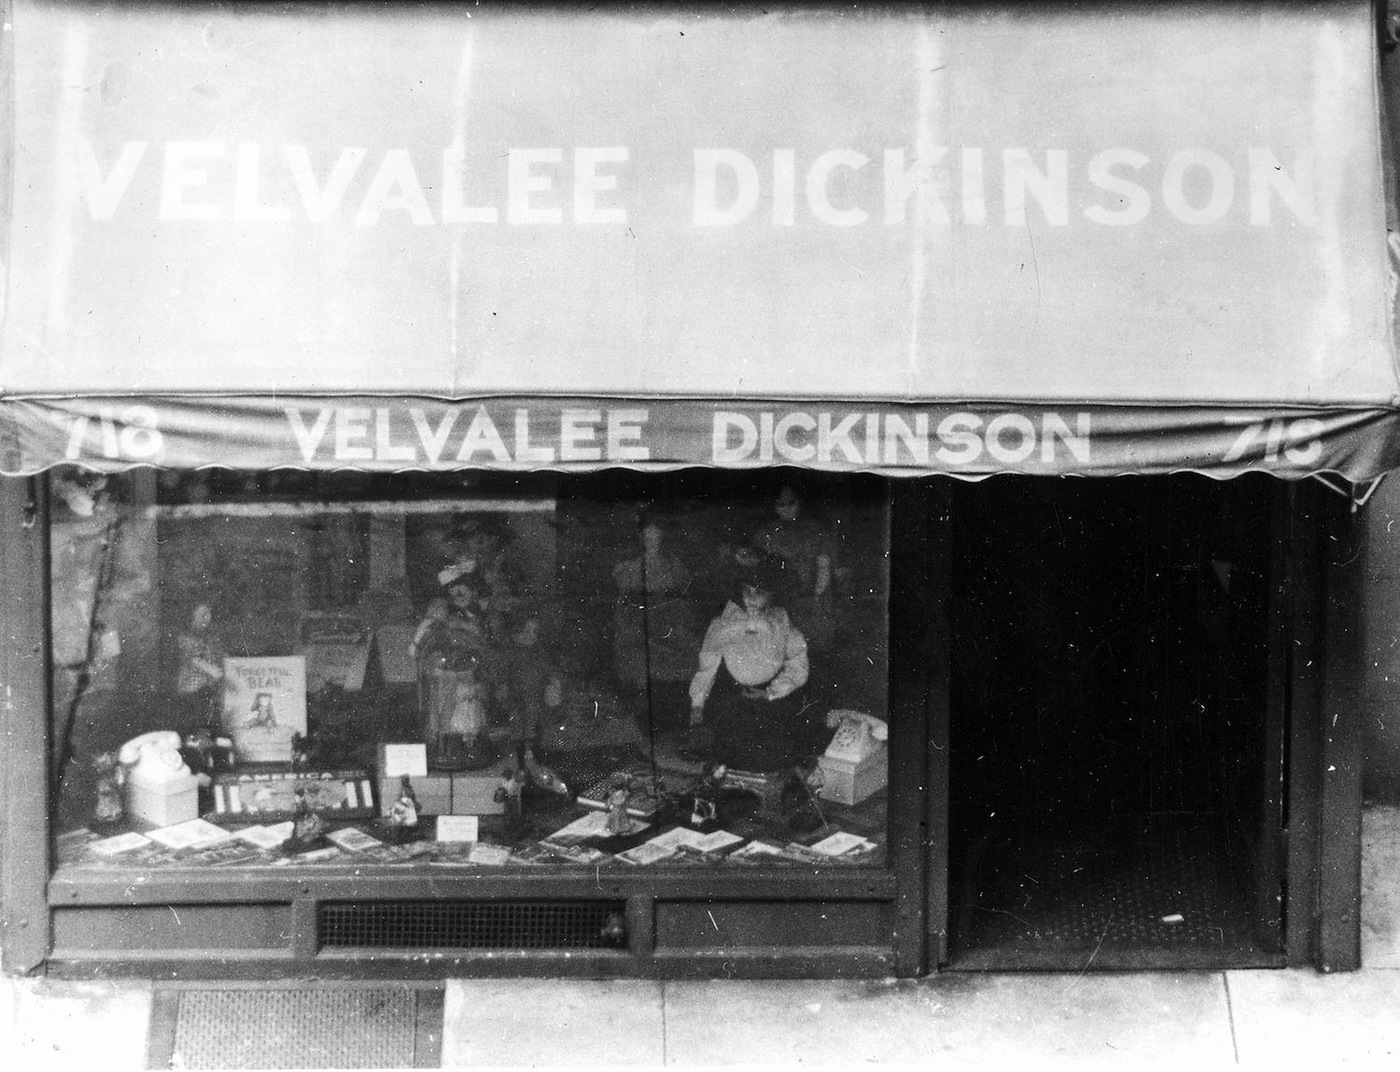 Doll shop in New York City owned by Velvalee Malvena Dickinson and used as a front for her espionage on behalf of Japan during World War II.